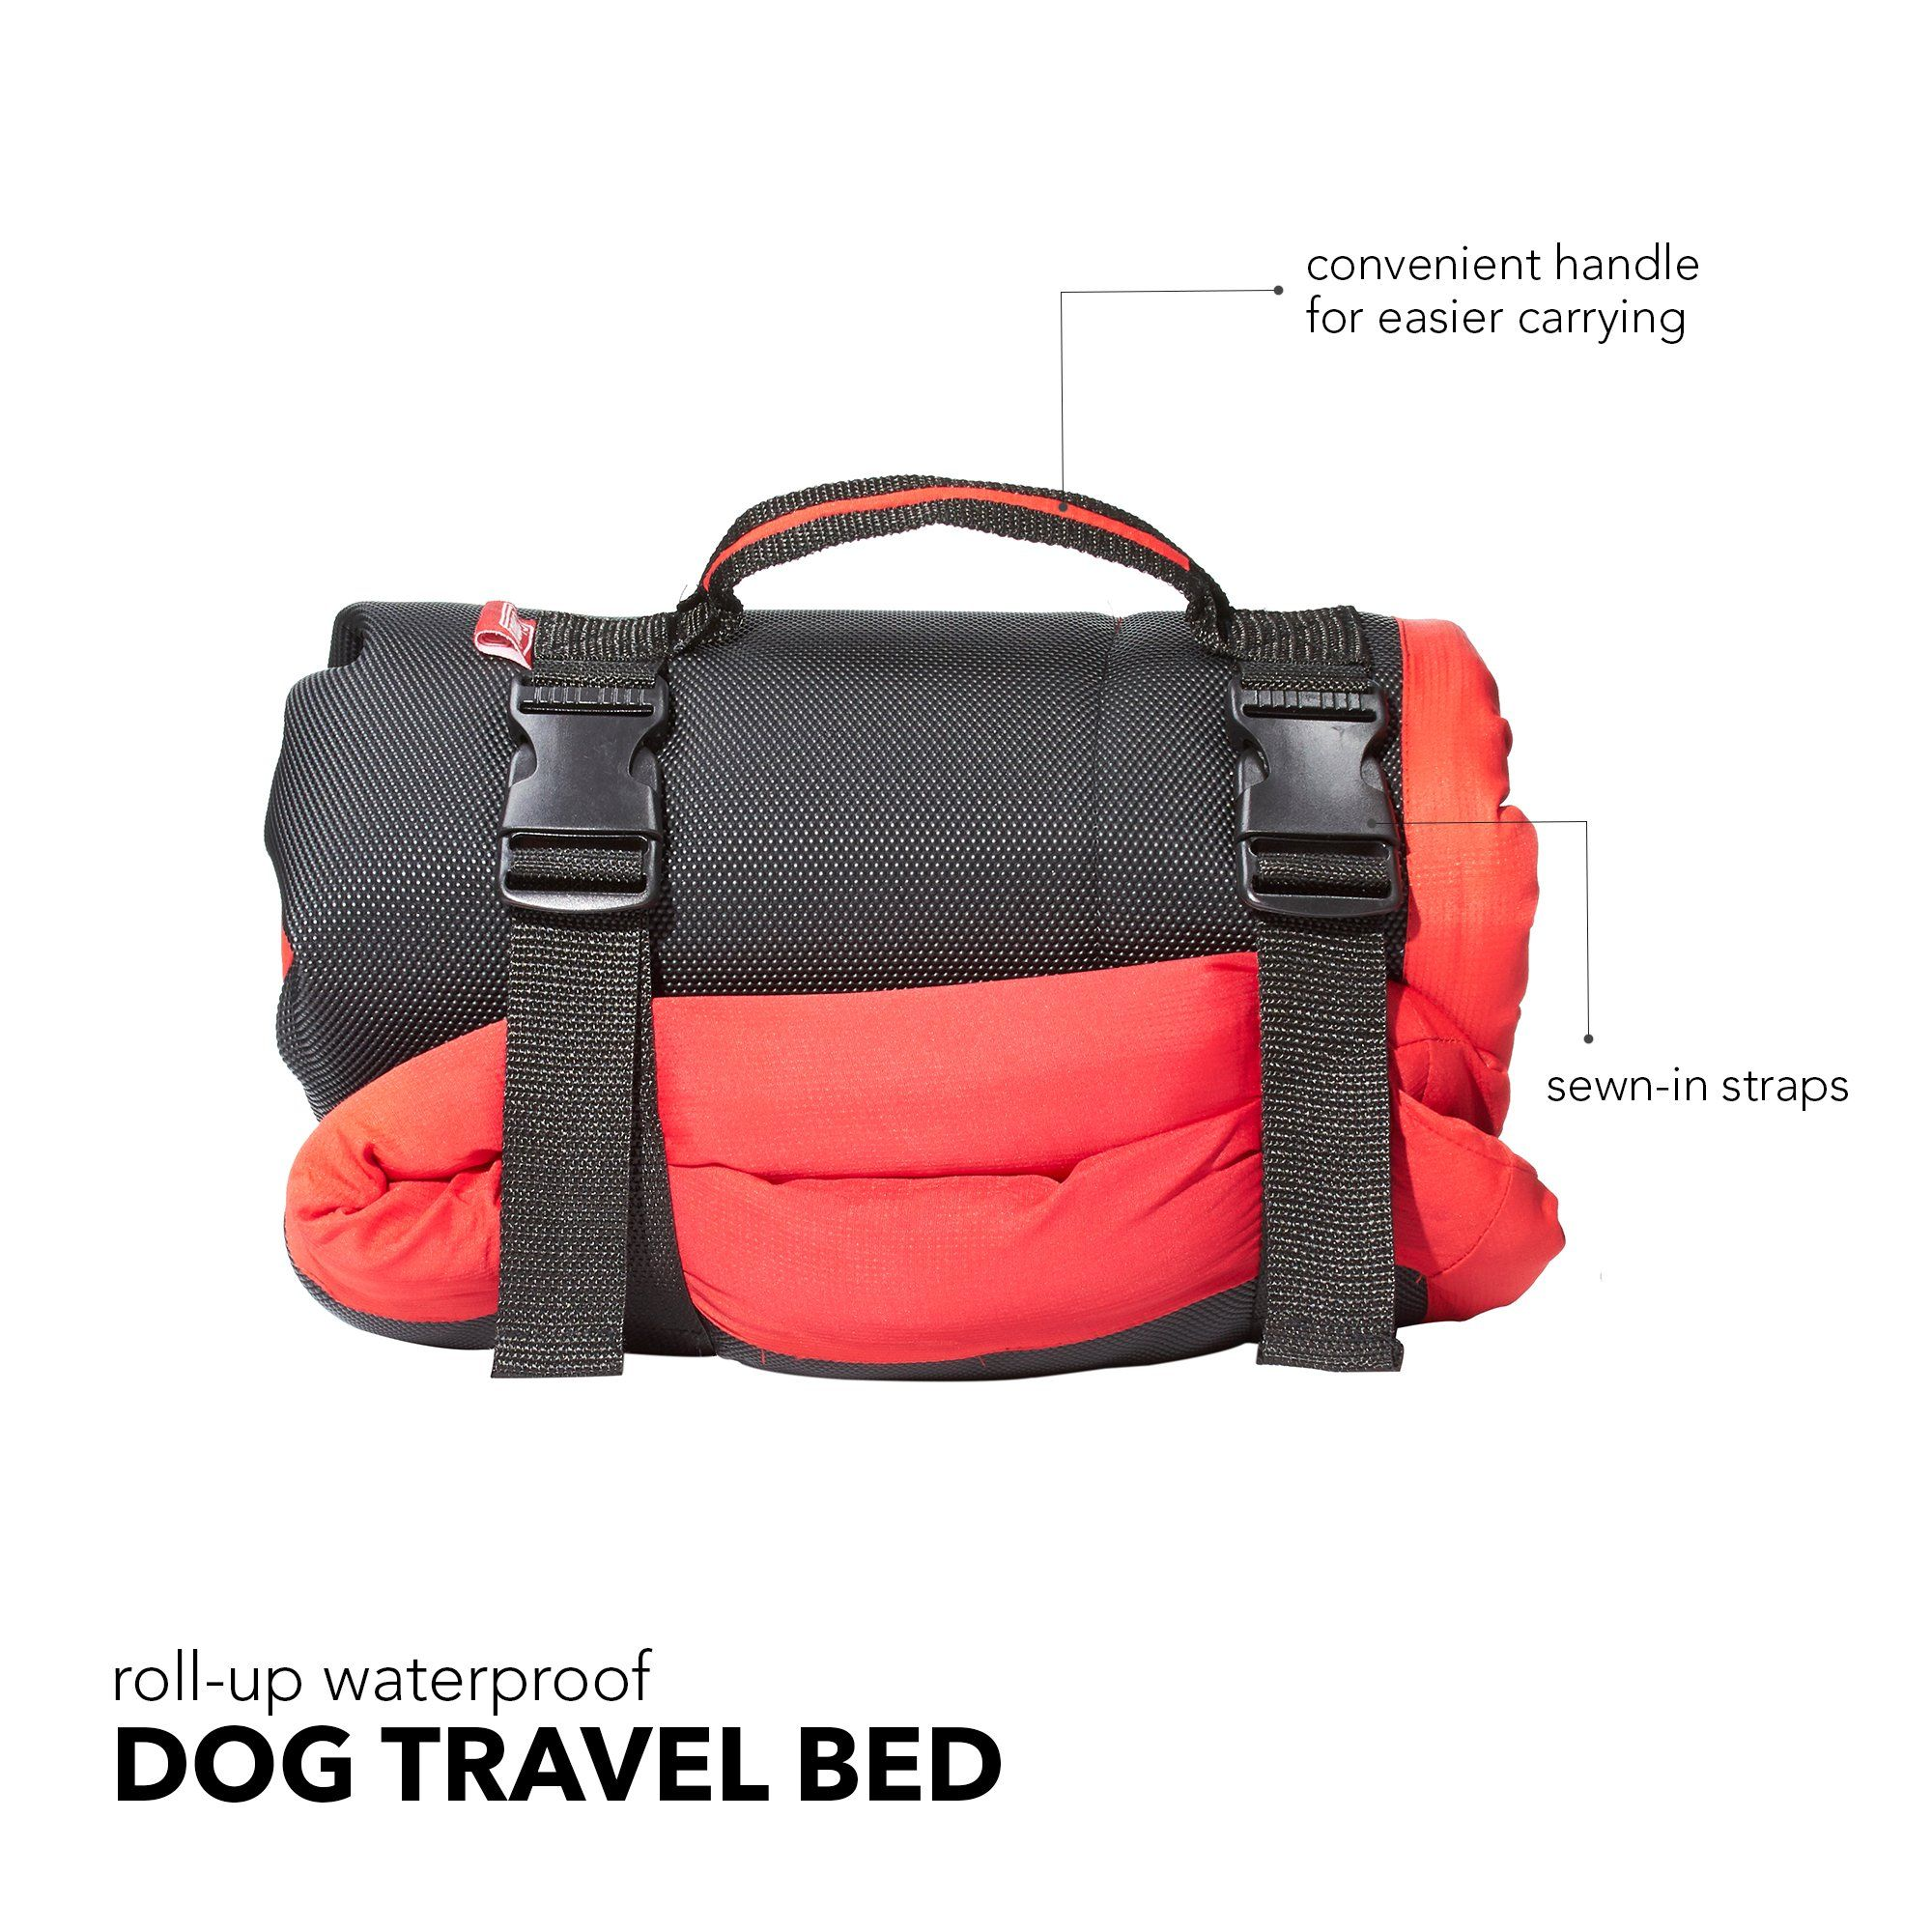 Coleman Rollup Waterproof Travel Bed To View Further For This